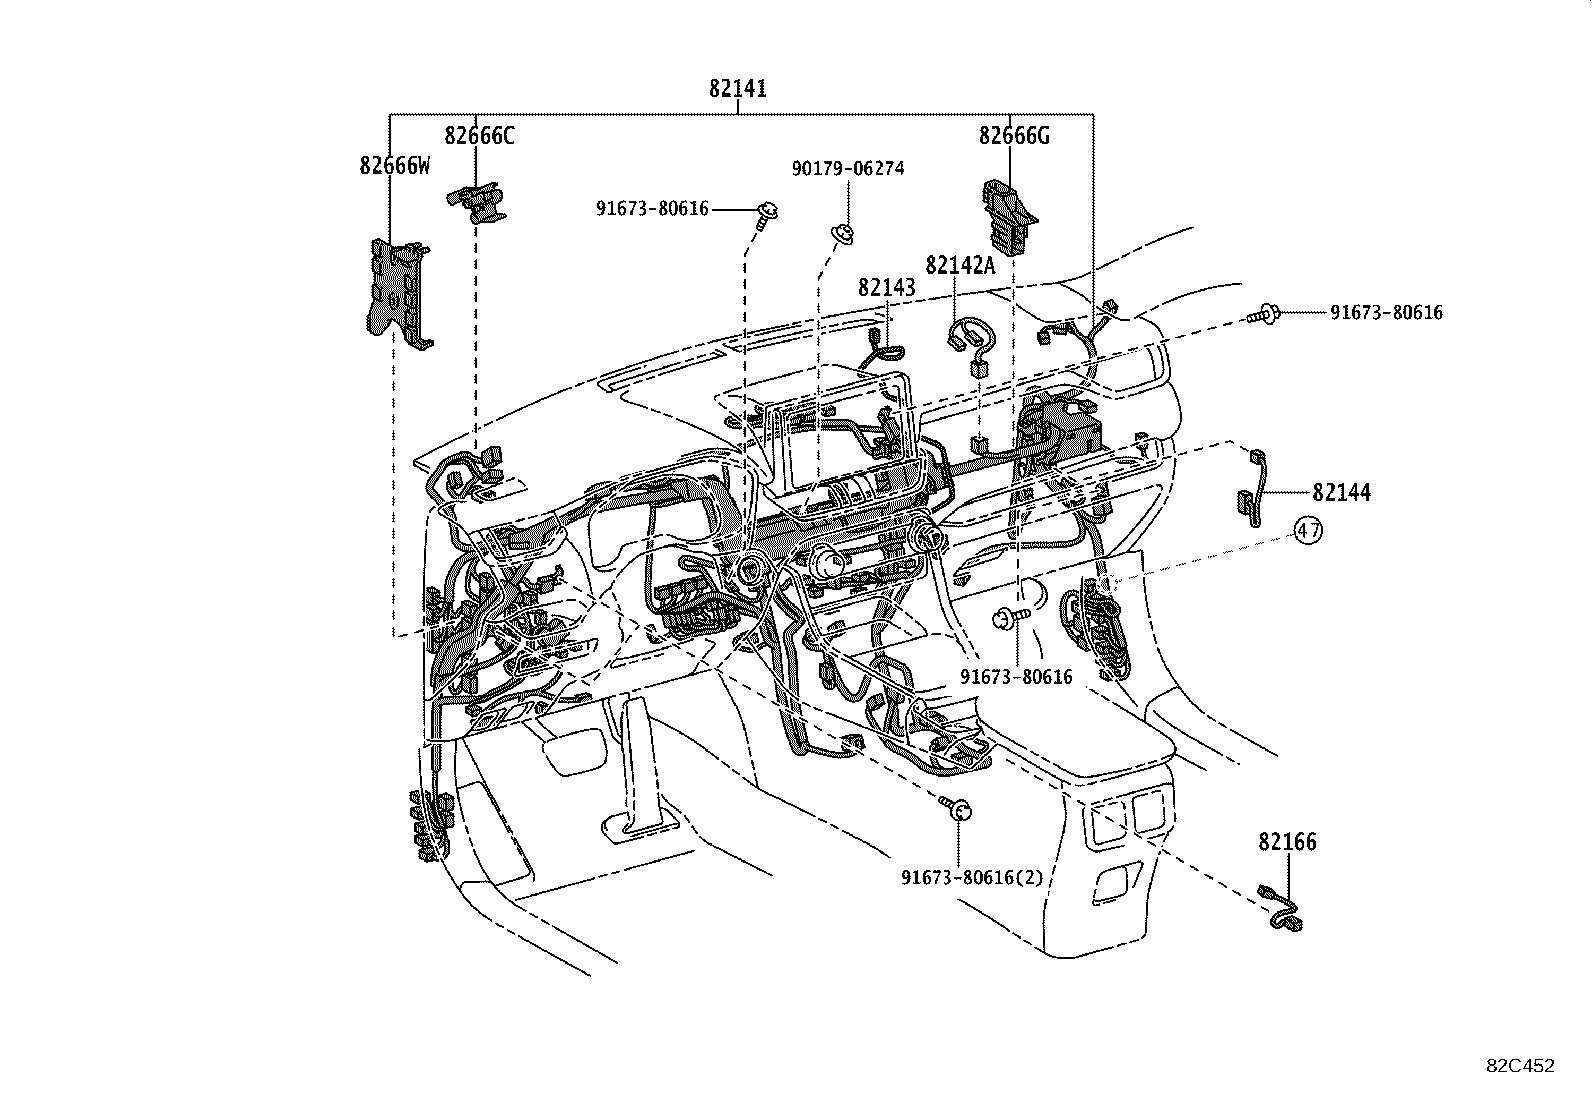 Toyota Rav4 Parking Aid System Wiring Harness Wire